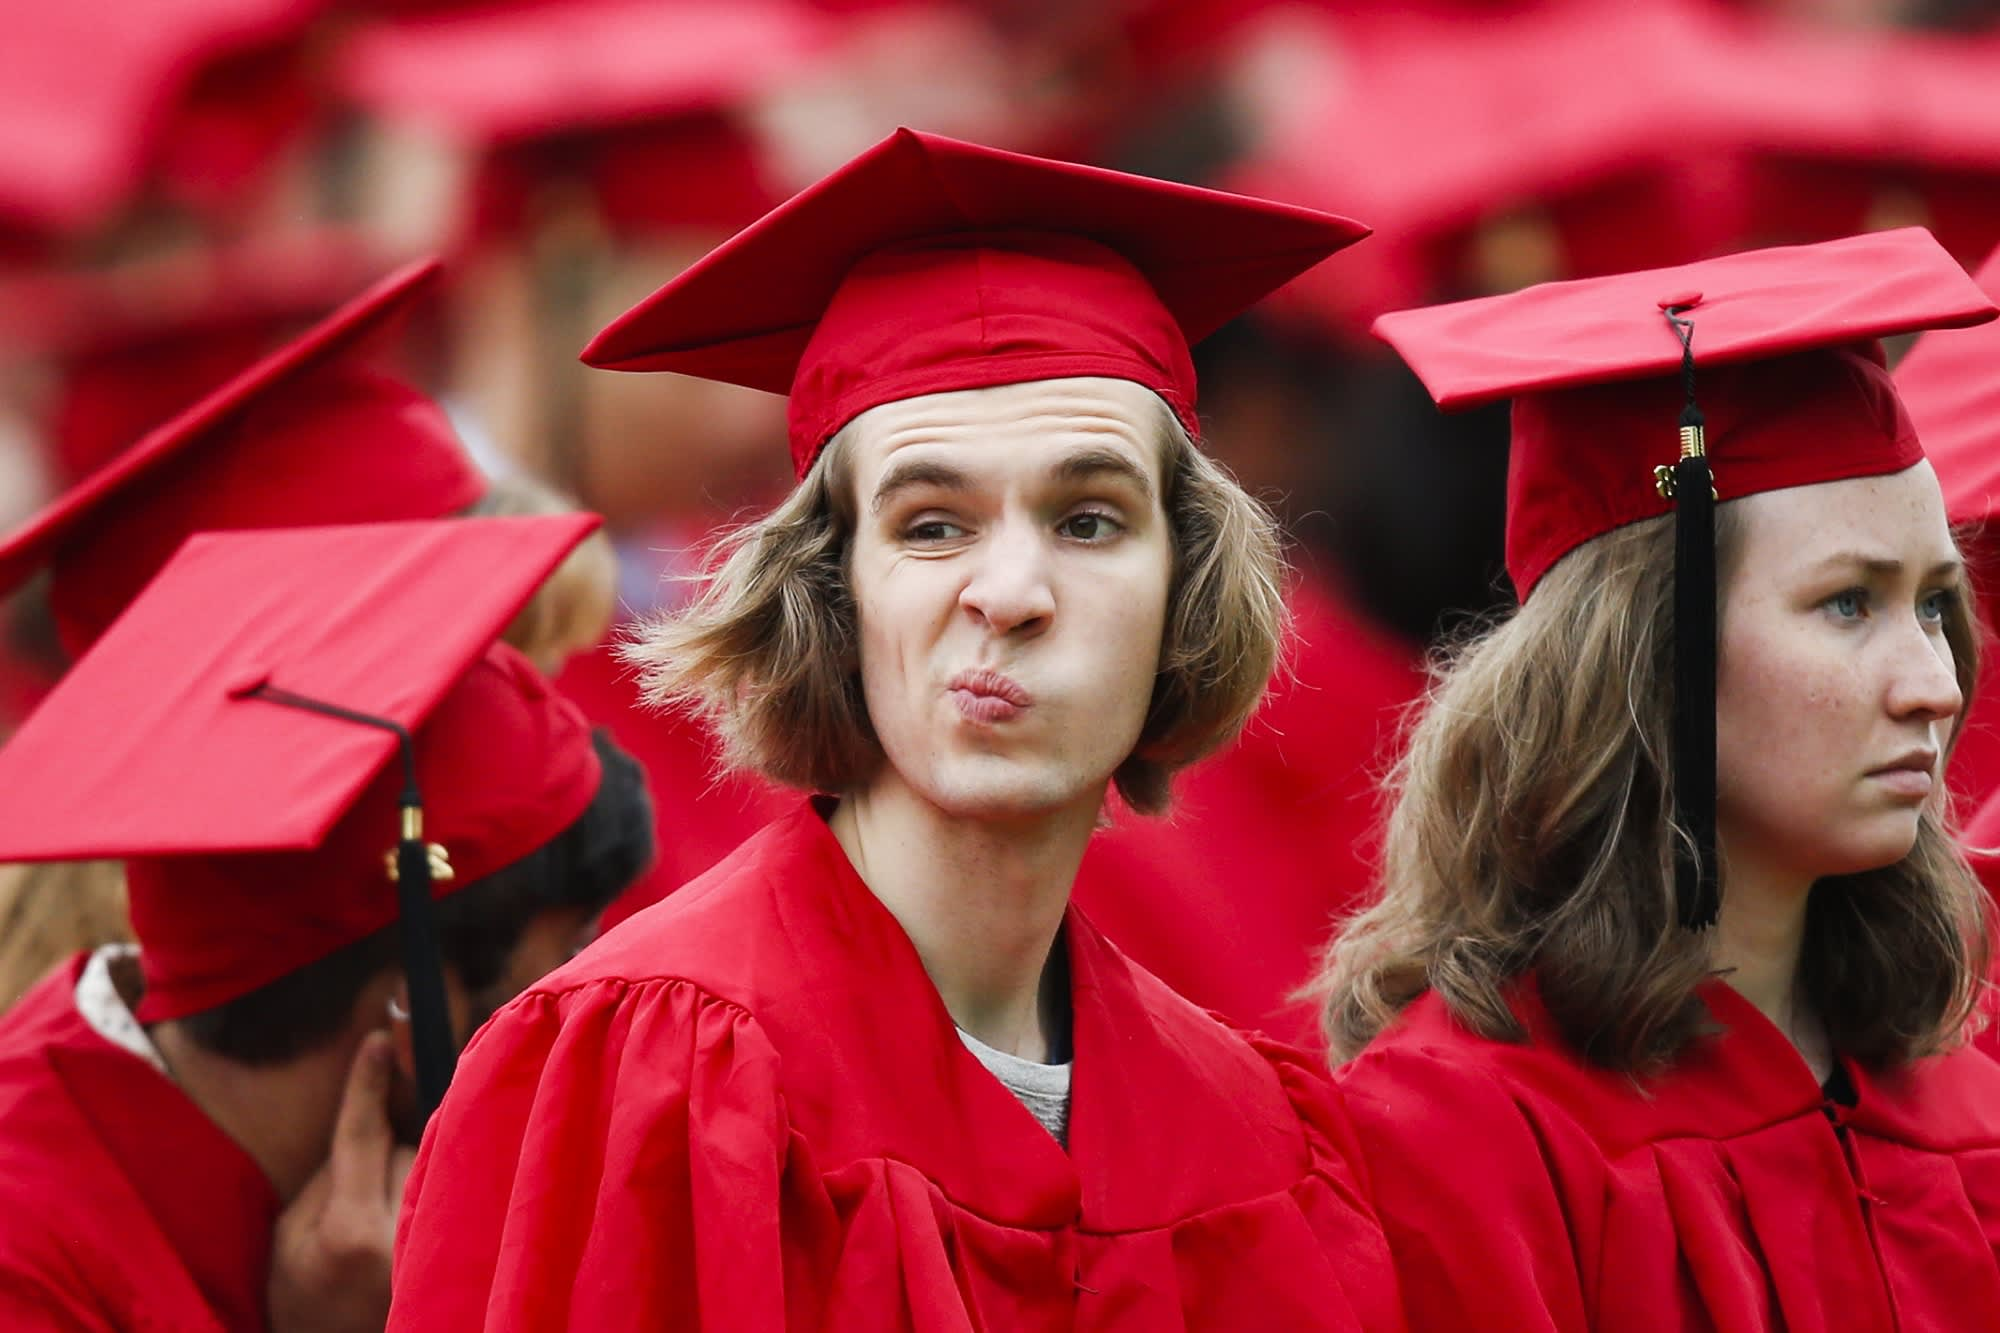 US student debt levels set a new record in 2018—here's how much the typical borrower owes